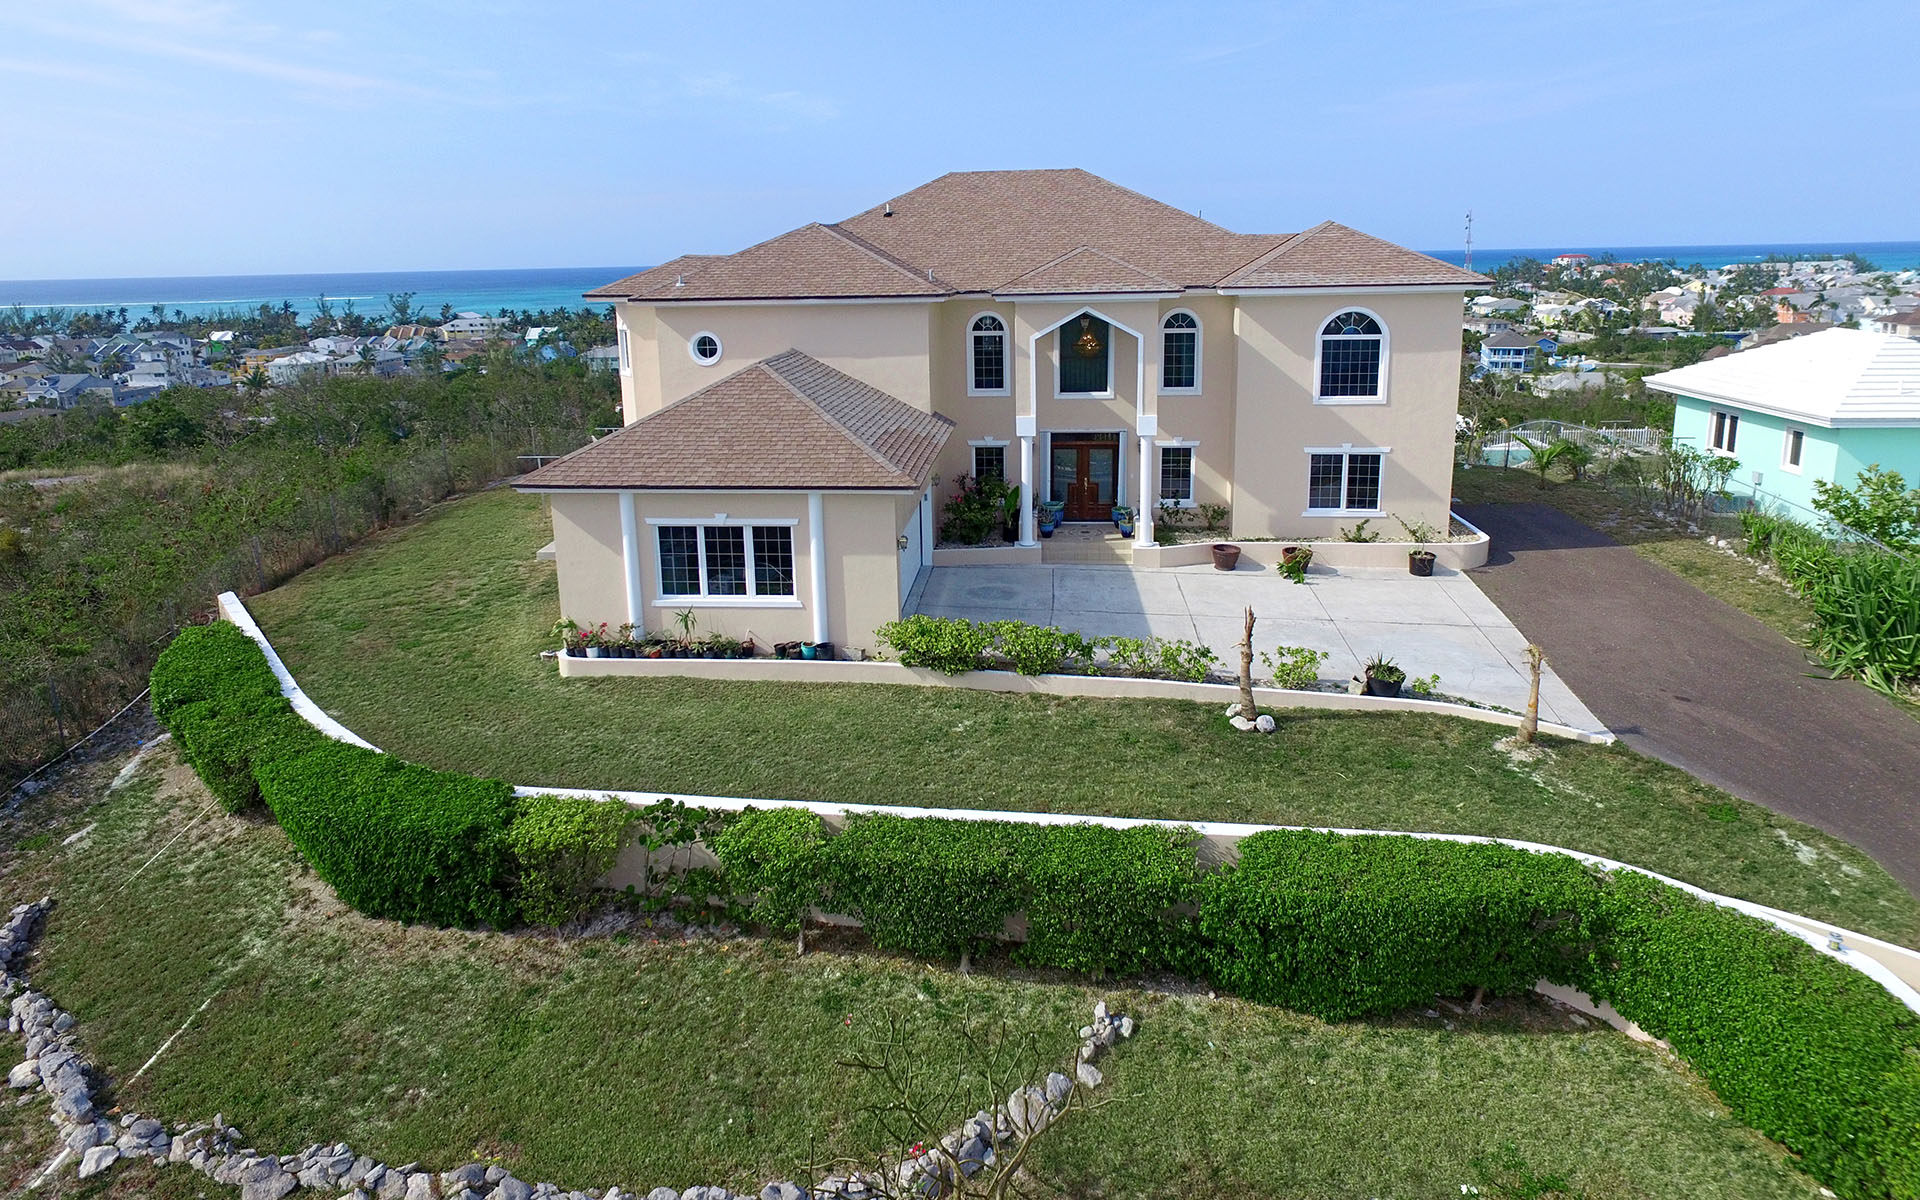 Villa per Vendita alle ore Large Oceanview Hilltop Home in Westridge MLS 27832 Nassau New Providence And Vicinity